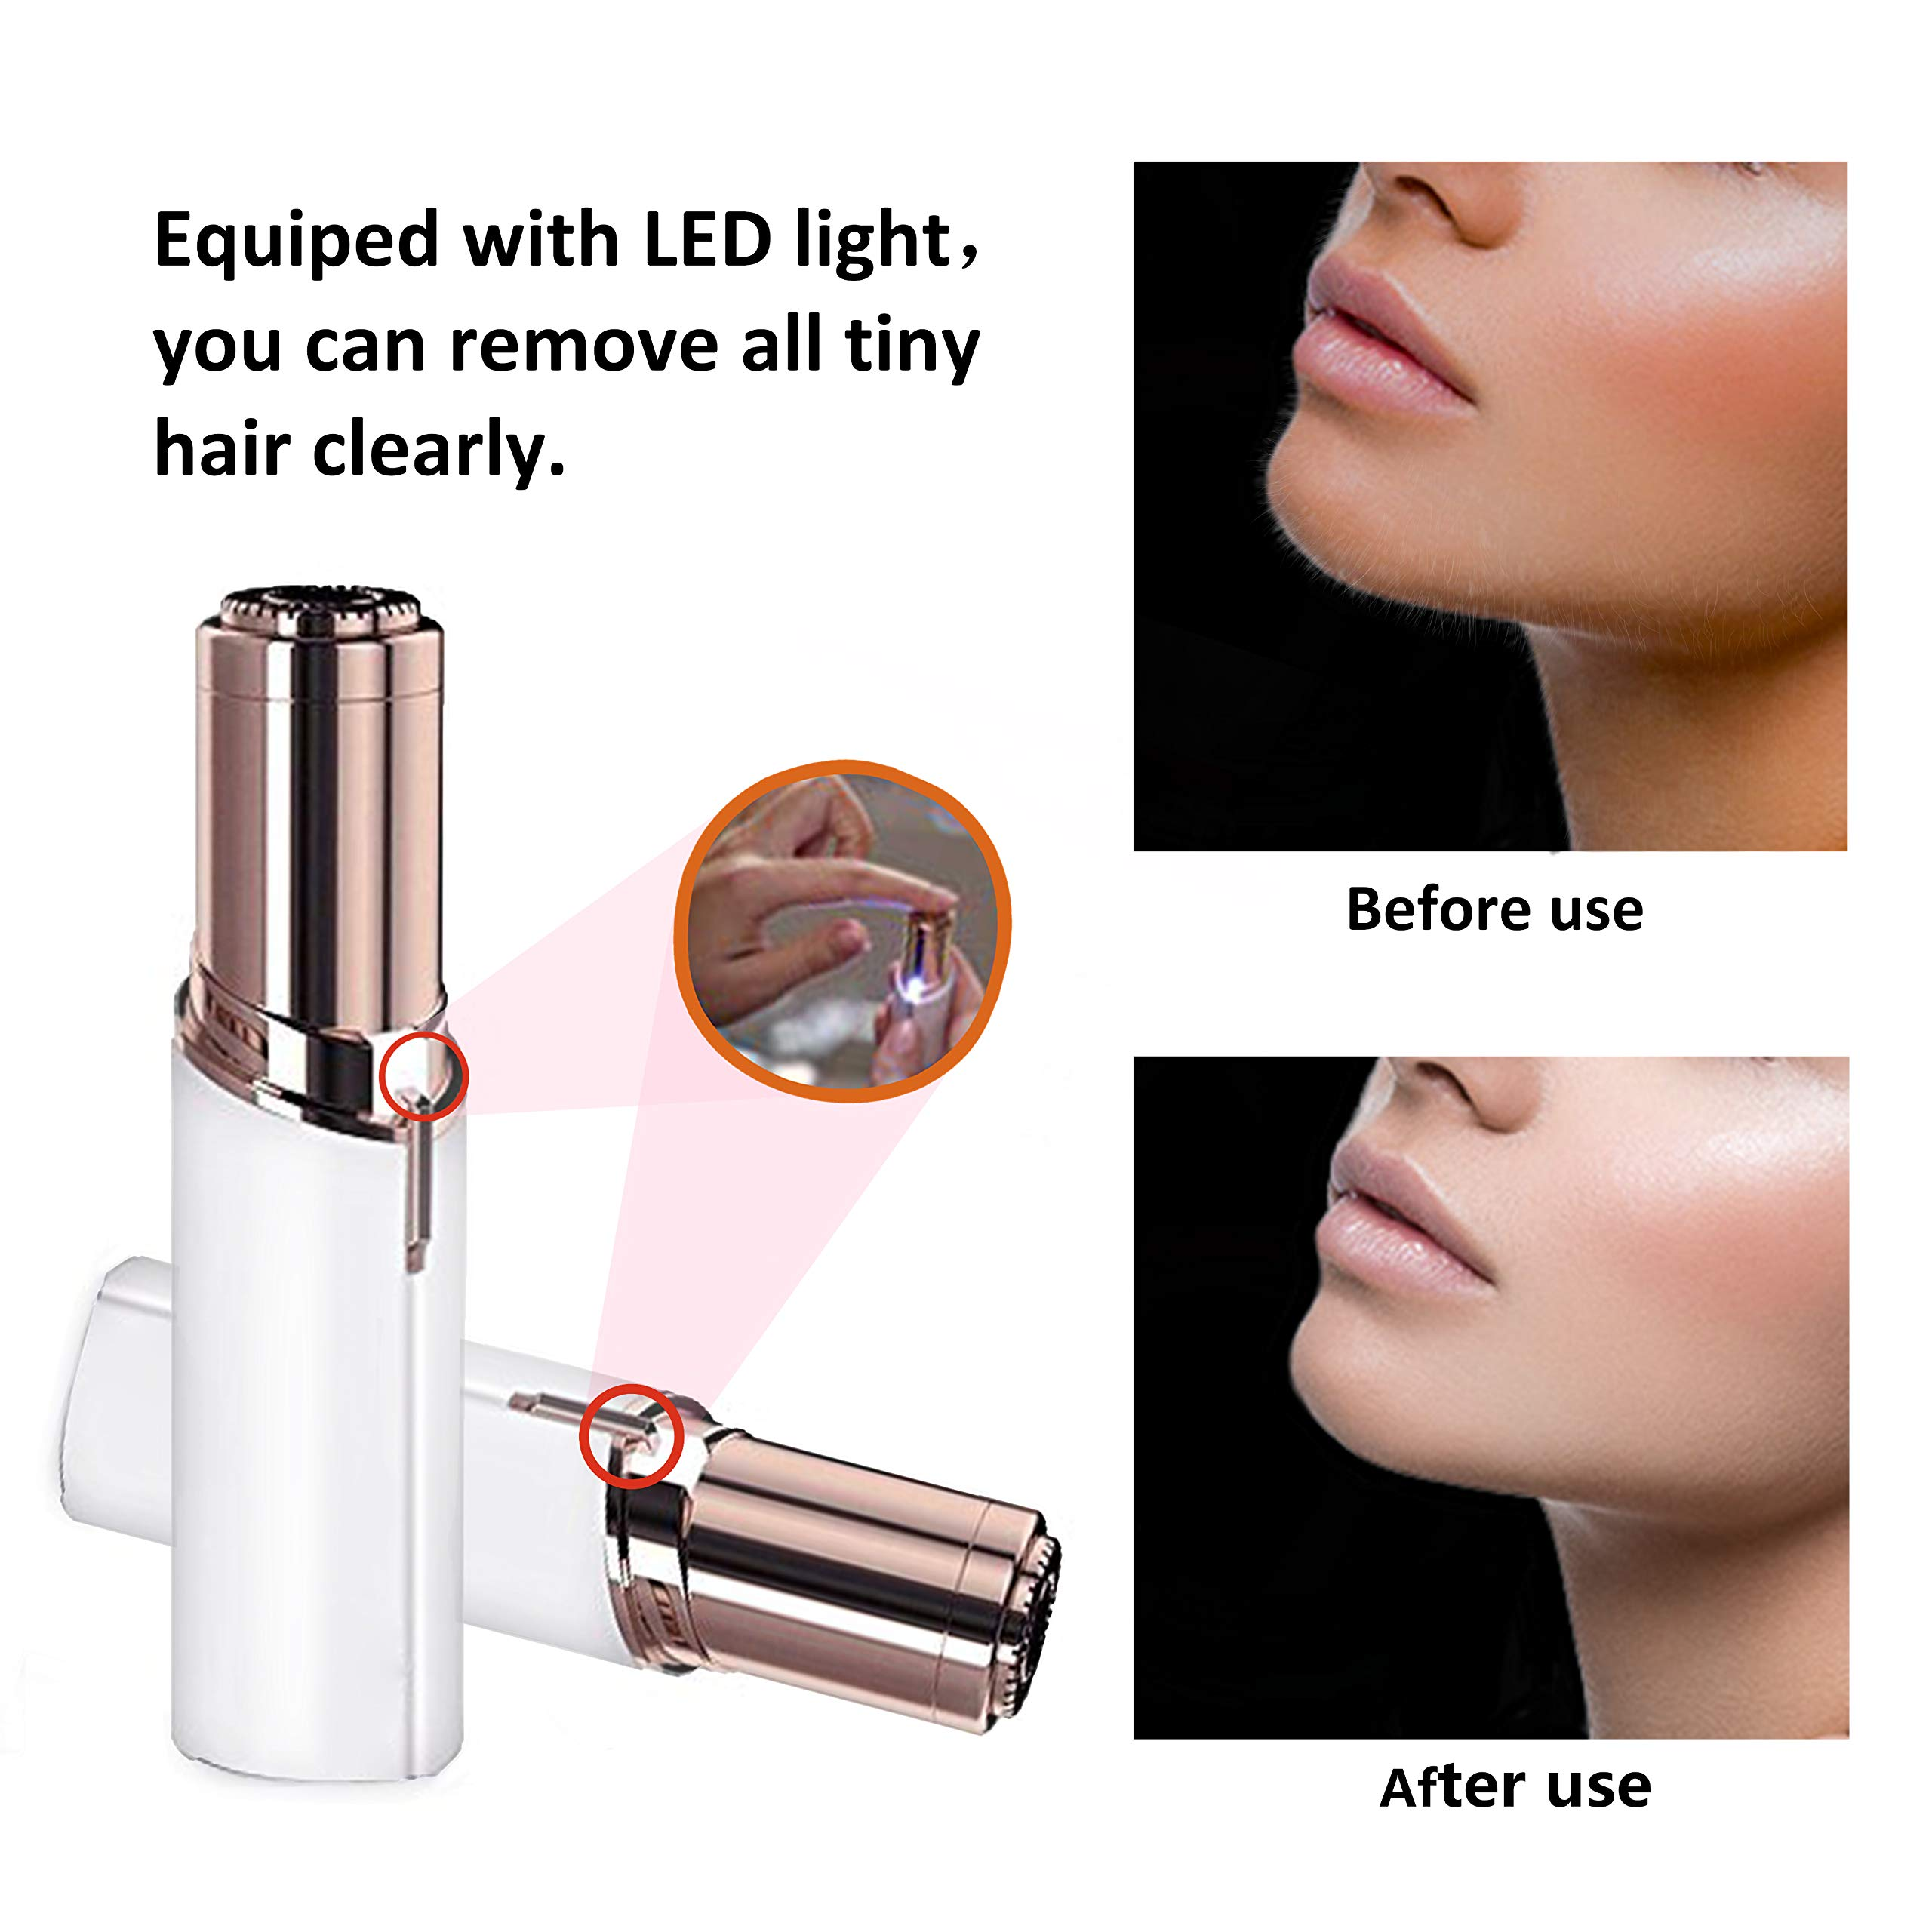 Women's Painless Hair Facial Remover, Remove Hairs on the Upper Lip, Chin, Cheeks, Sideburns, Mini Portable Travel Size with LED Light By Verfanny,white by Verfanny (Image #3)